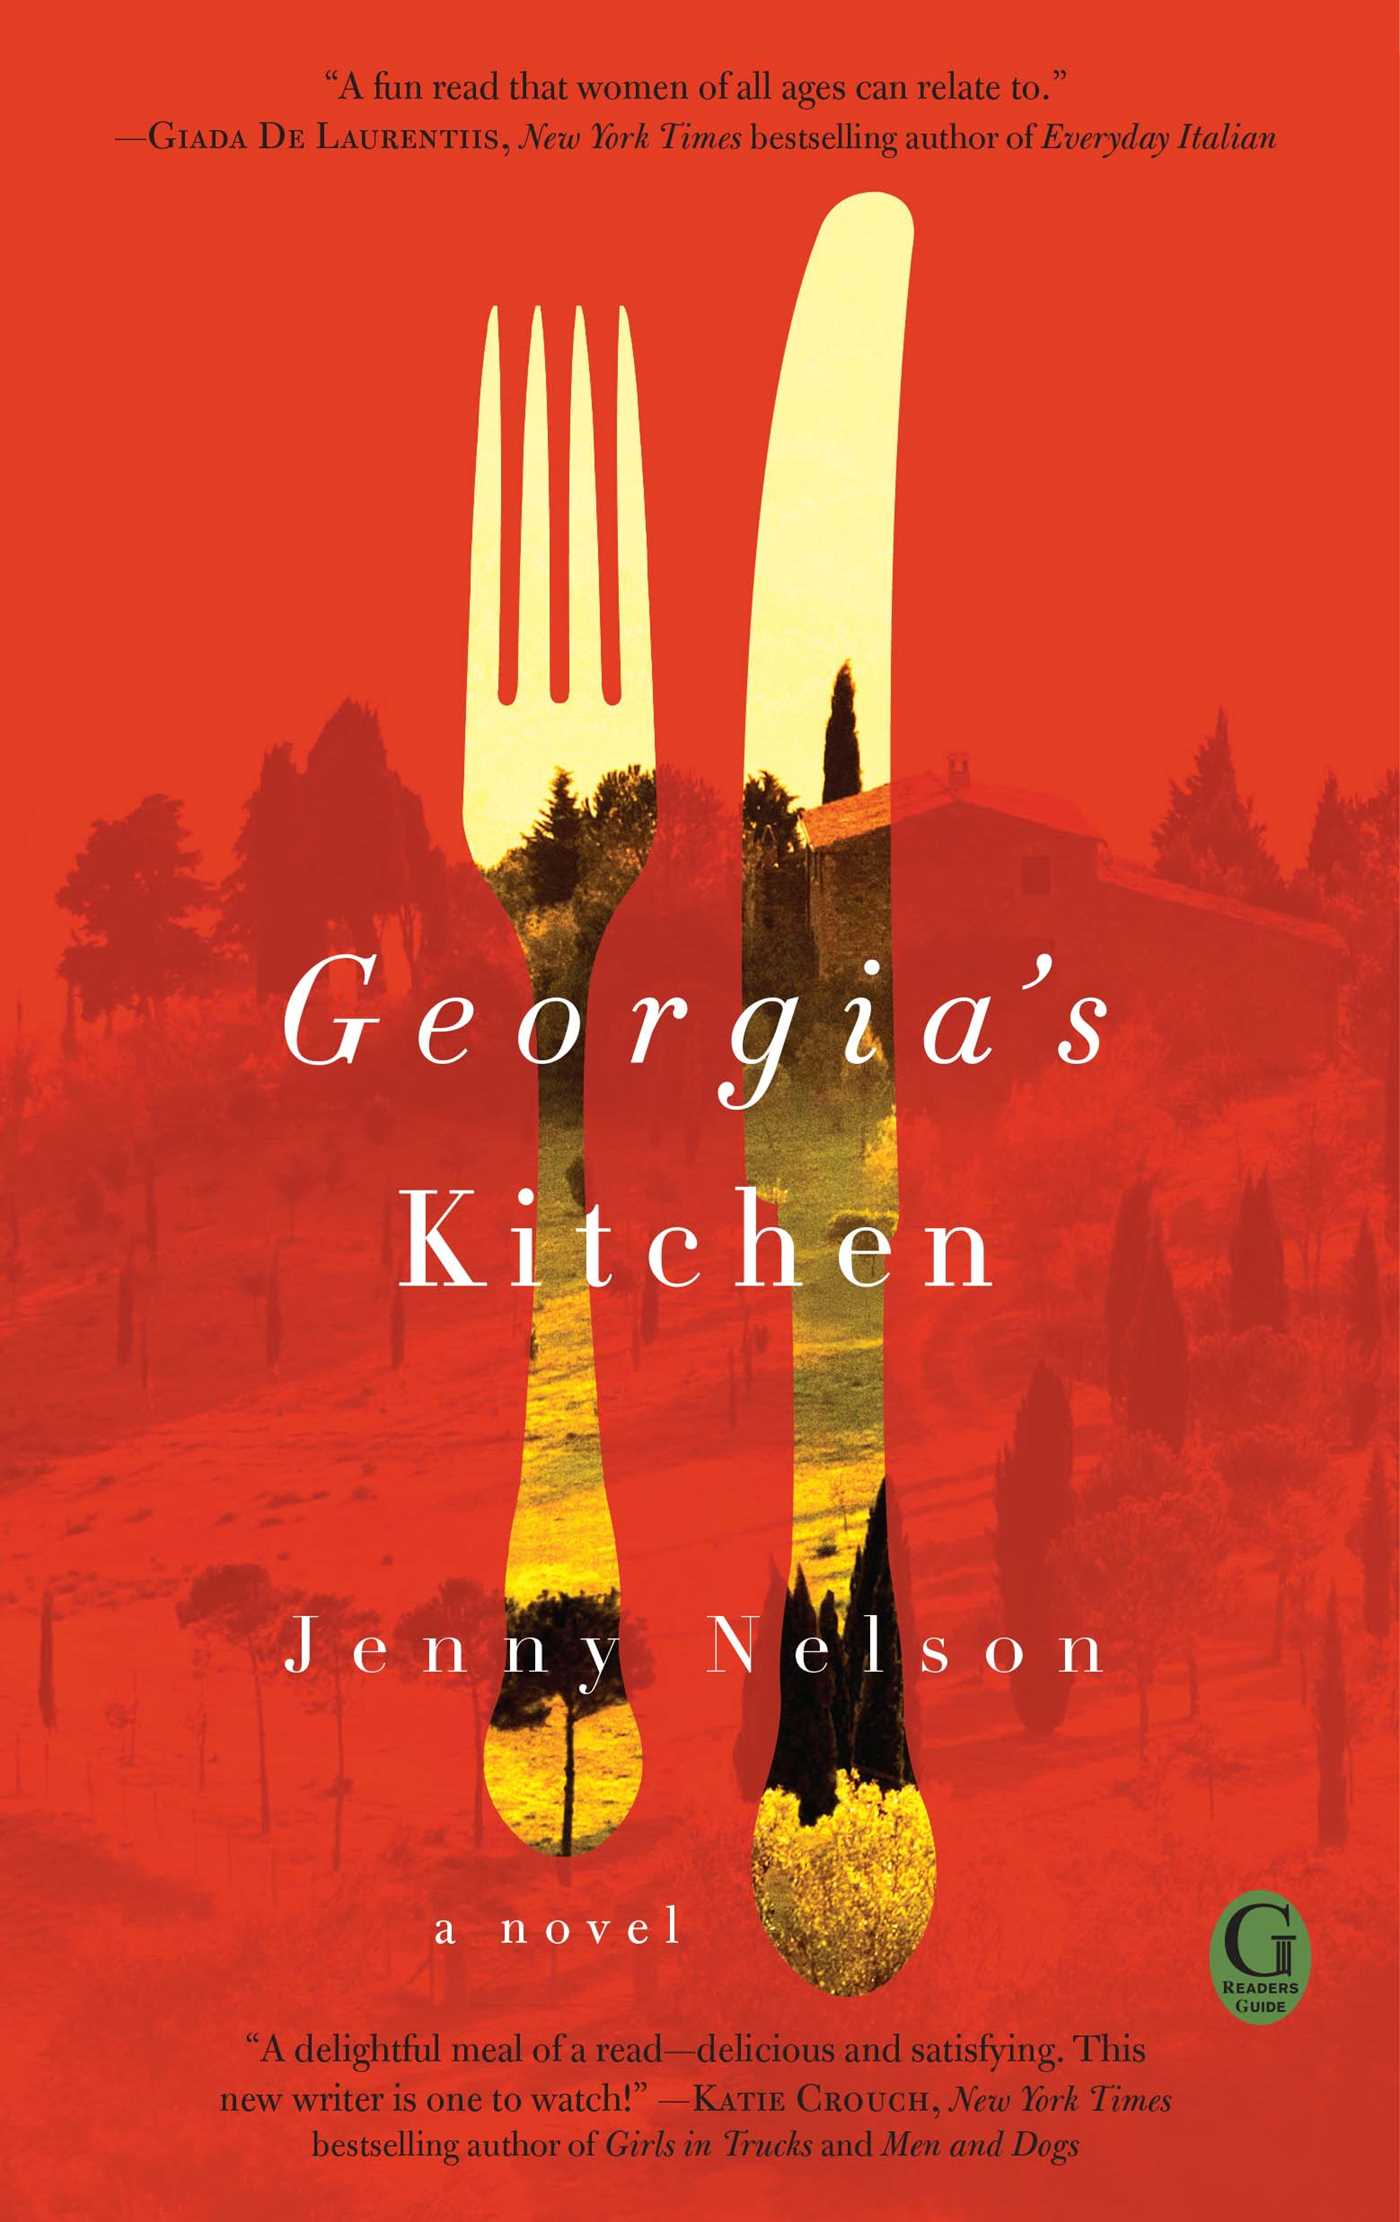 Georgias-kitchen-9781439173336_hr